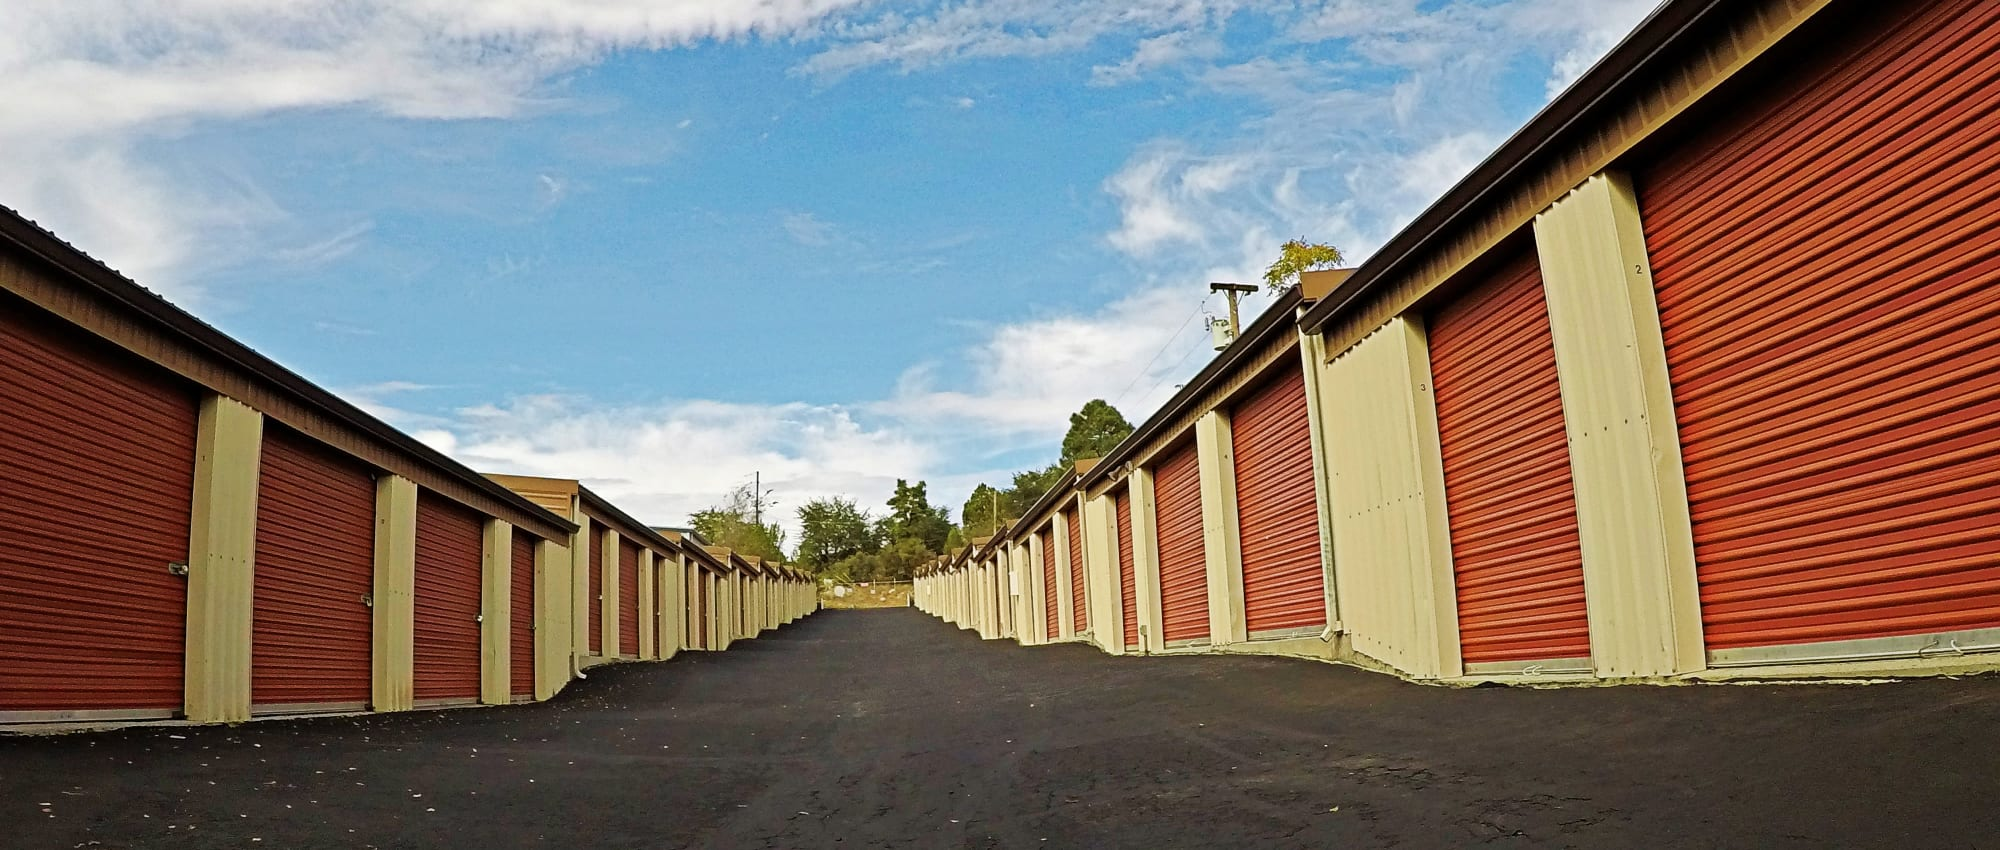 Genial Unit Sizes And Prices At The Self Storage Facility In Prescott